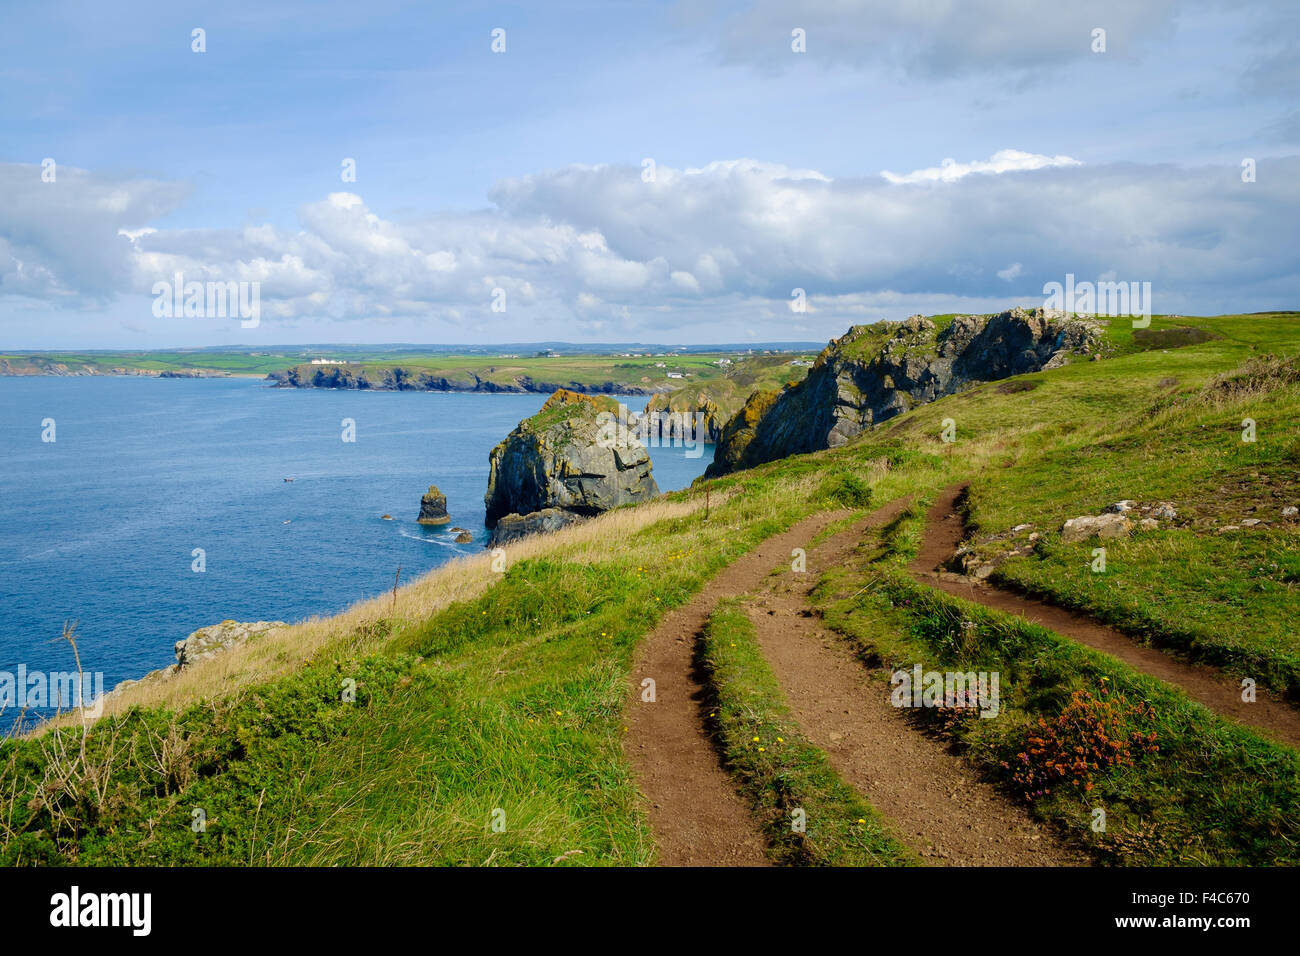 South West Coast Path et Cornwall coast vue près de meneau, Péninsule du Lézard, Cornwall, England, Photo Stock